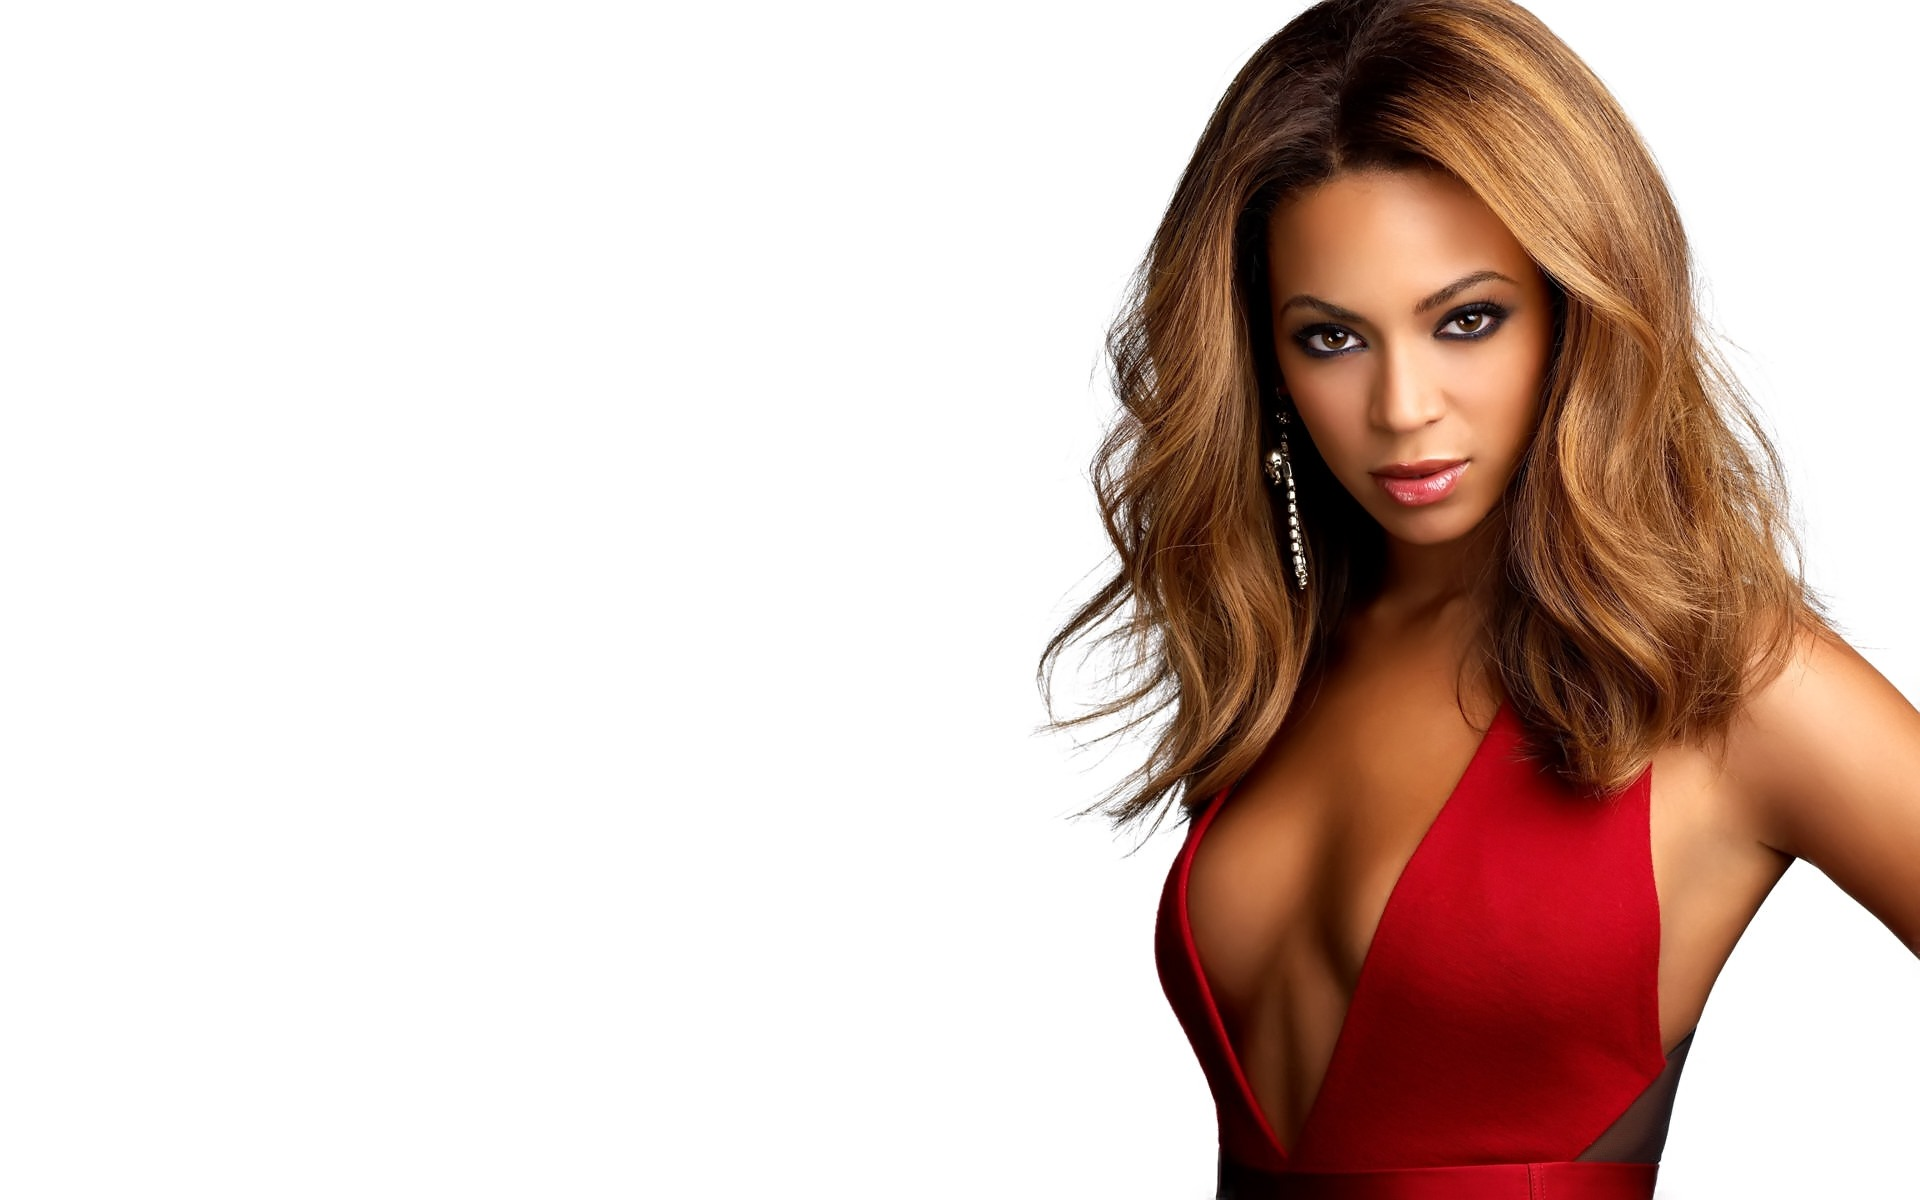 Female Celebrity Wallpapers